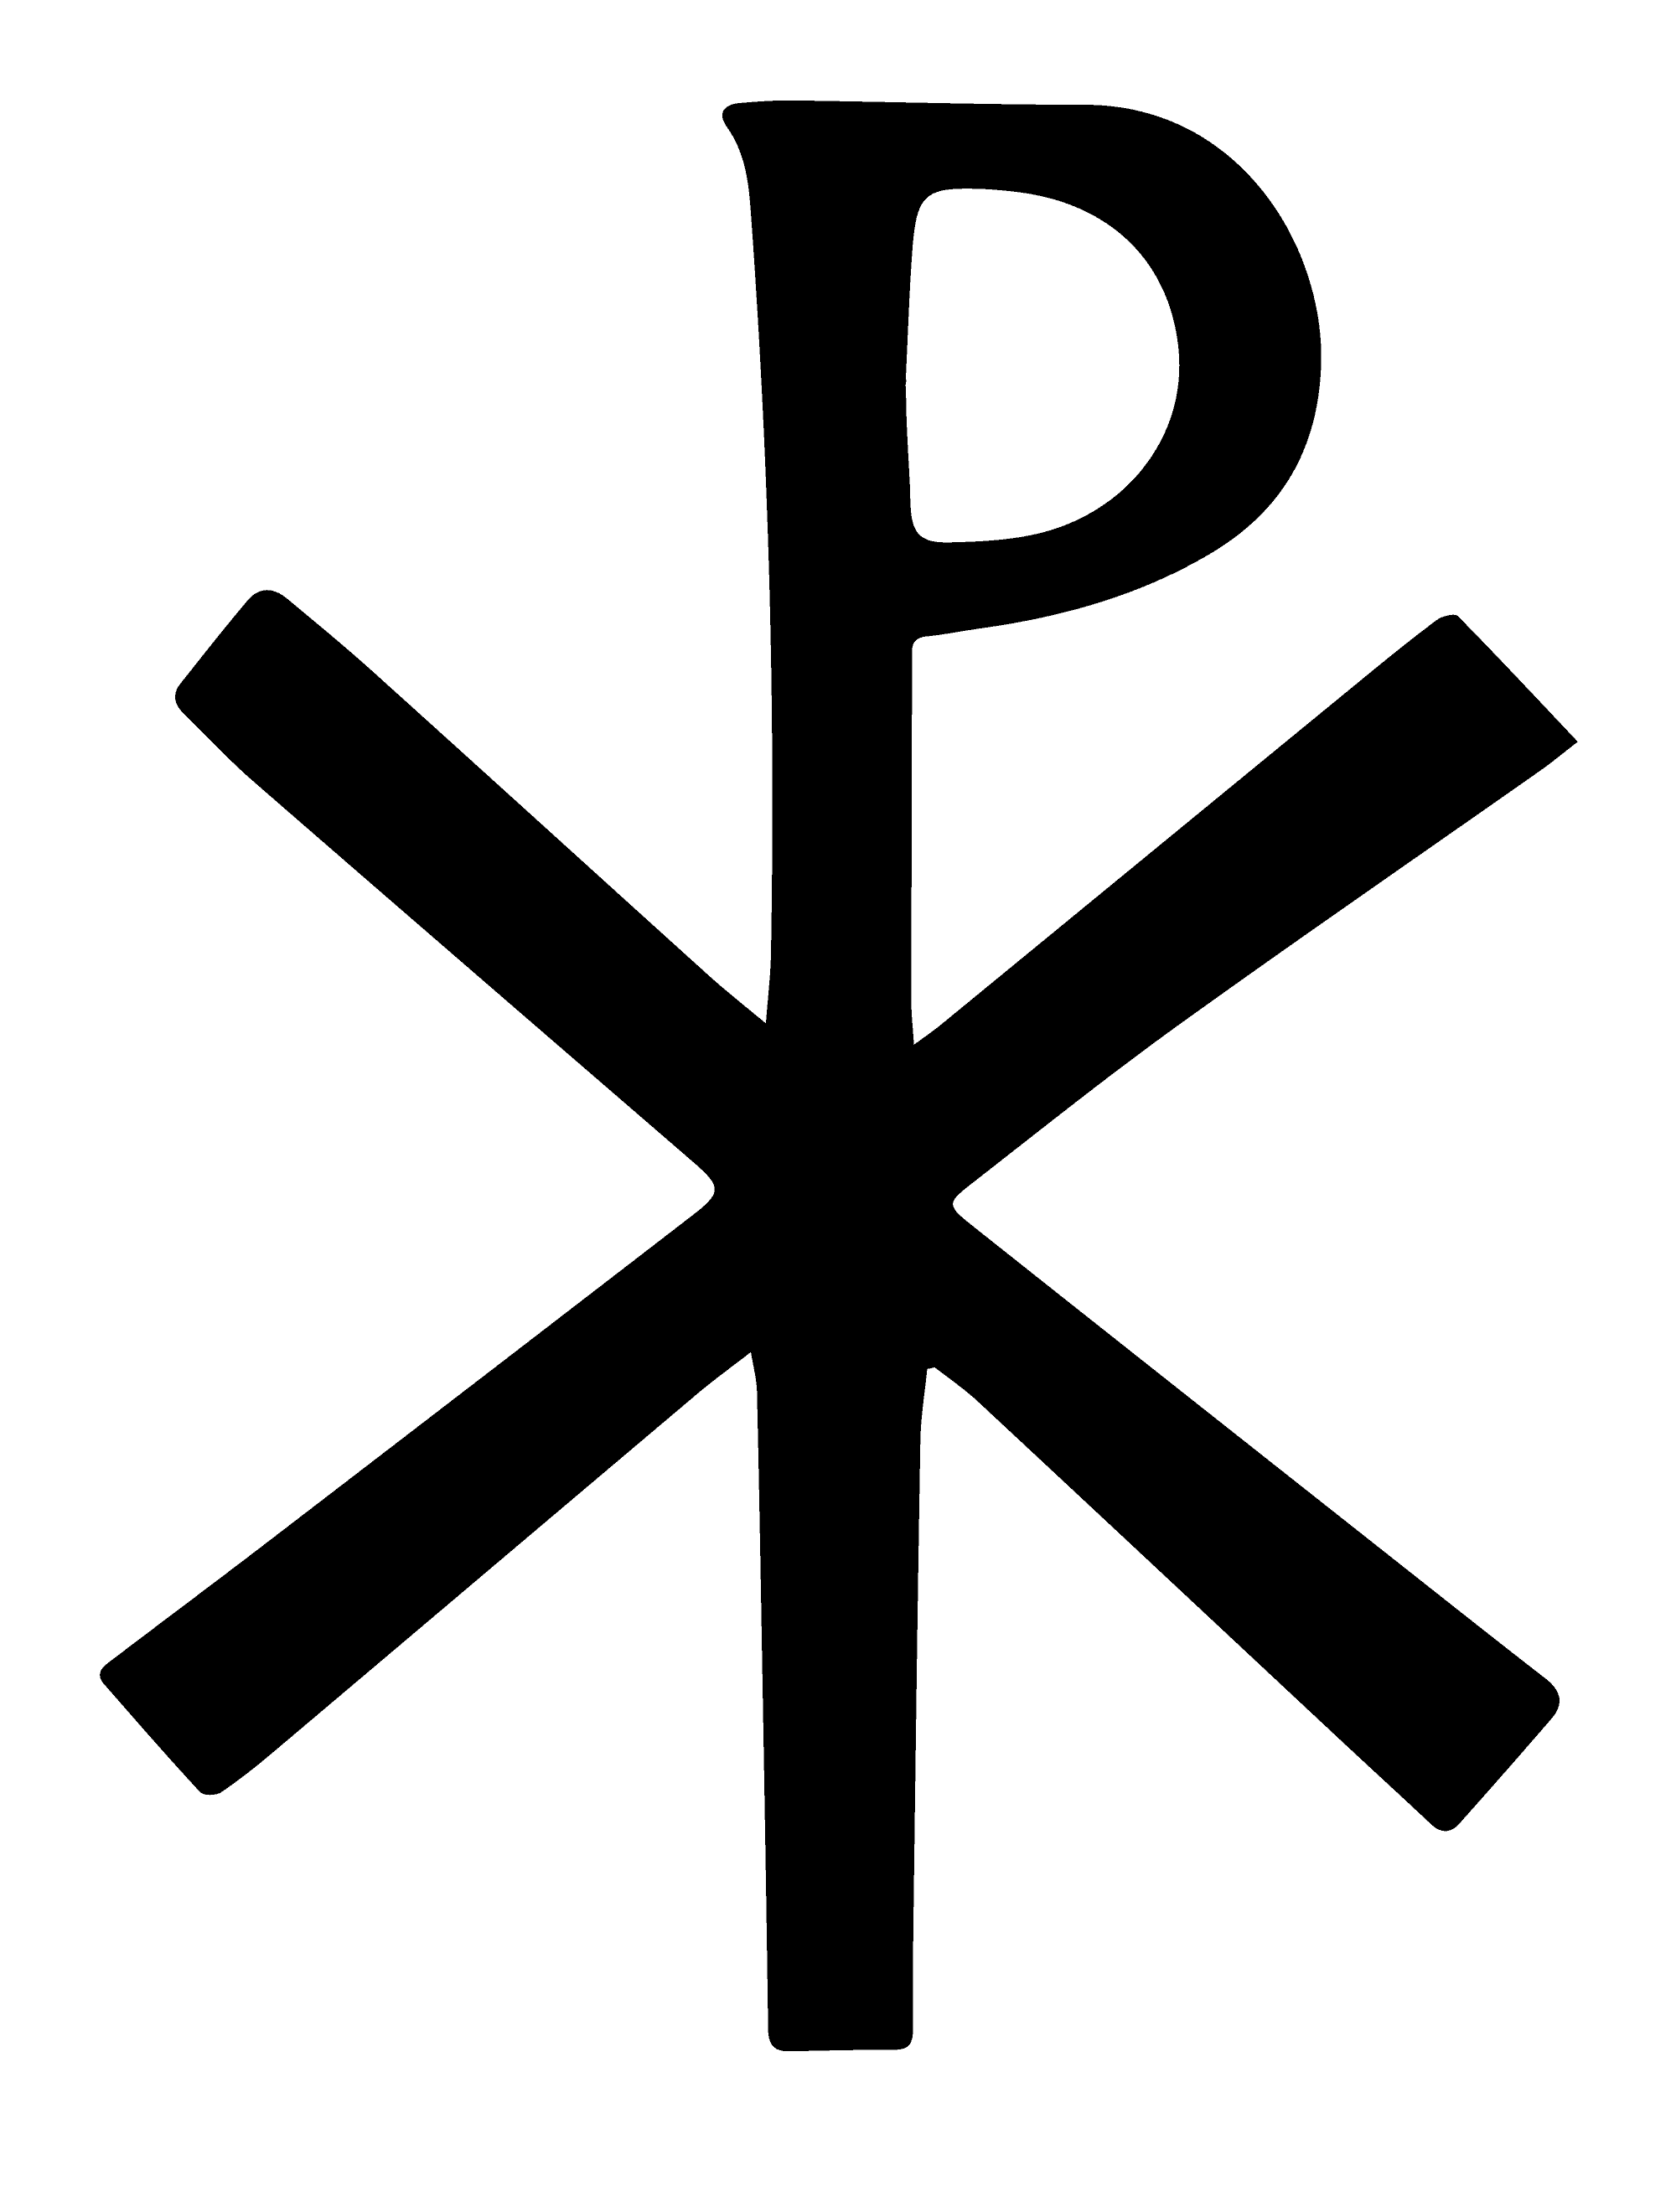 Chi-Rho Symbol Meaning and Origins, Catholic and Protestant Christogram in Black and White